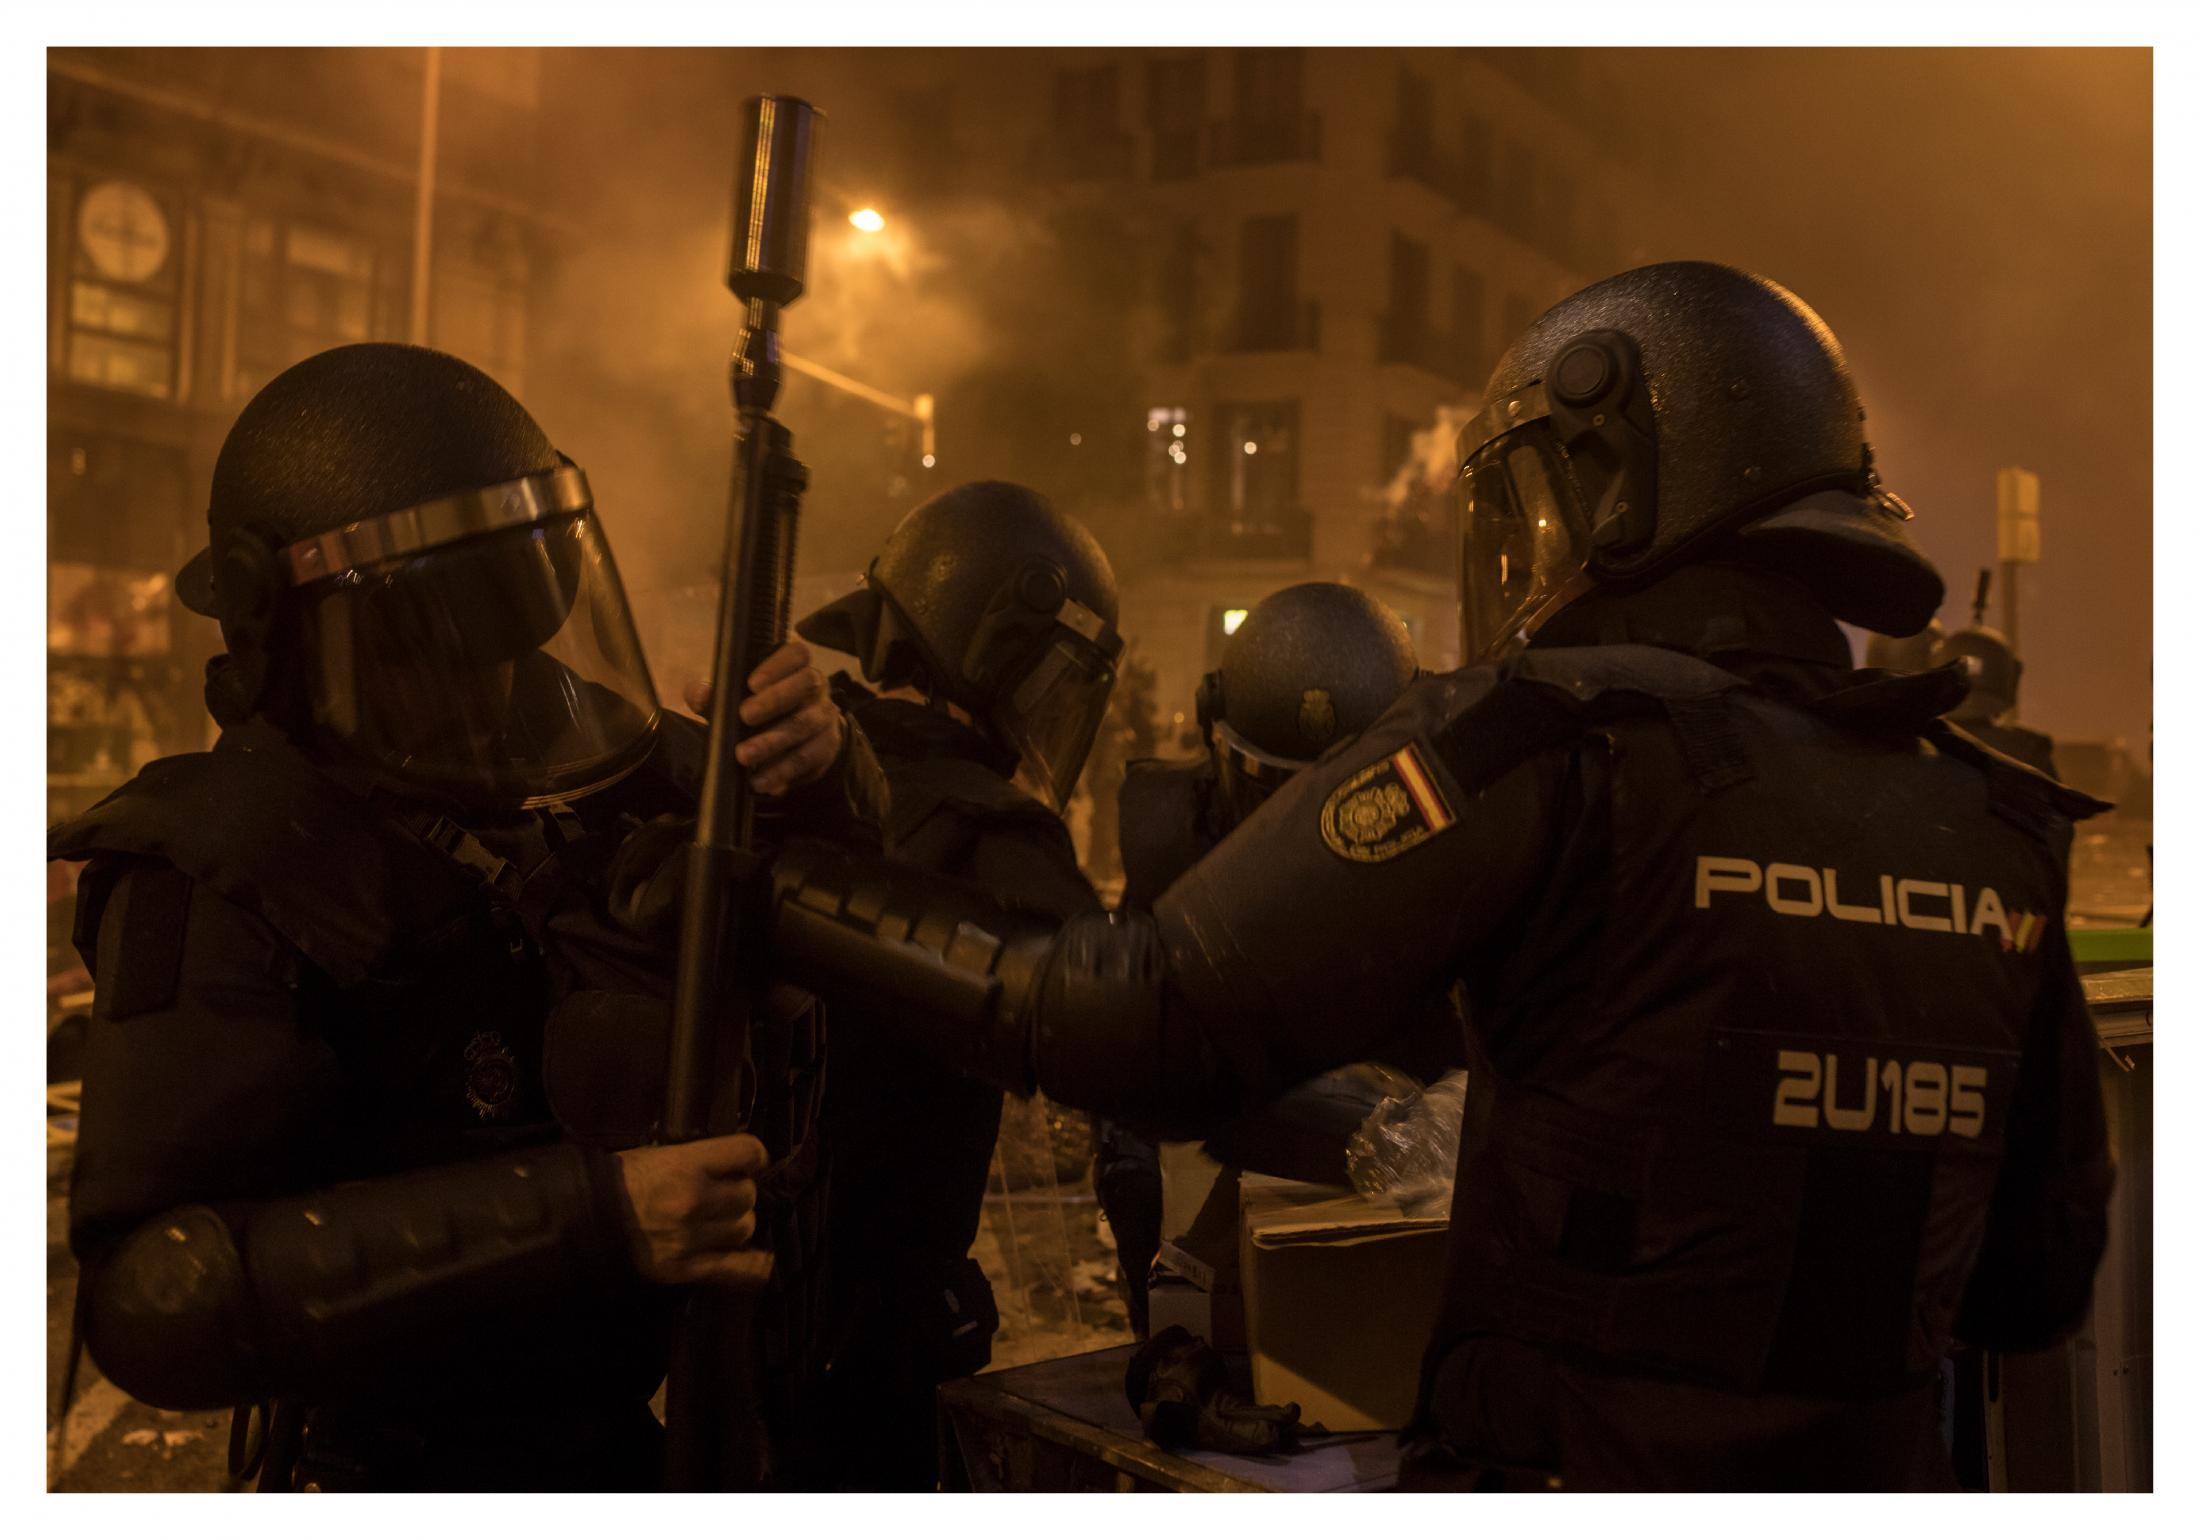 """During the protests after the sentence in Catalonia, Spanish police were authorized to use weapons, particularly rubber bullets which by law should not be fired from less than 50 meters or hit above the knee. 4 people lost their eyes after being hit by police during protests in Catalonia. Rights group Amnesty International called on """"all authorities"""" to refrain from contributing to the escalation of tensions in the streets and to respond """"proportionally"""" to outbreaks of violence. October 2019, Barcelona, Spain."""